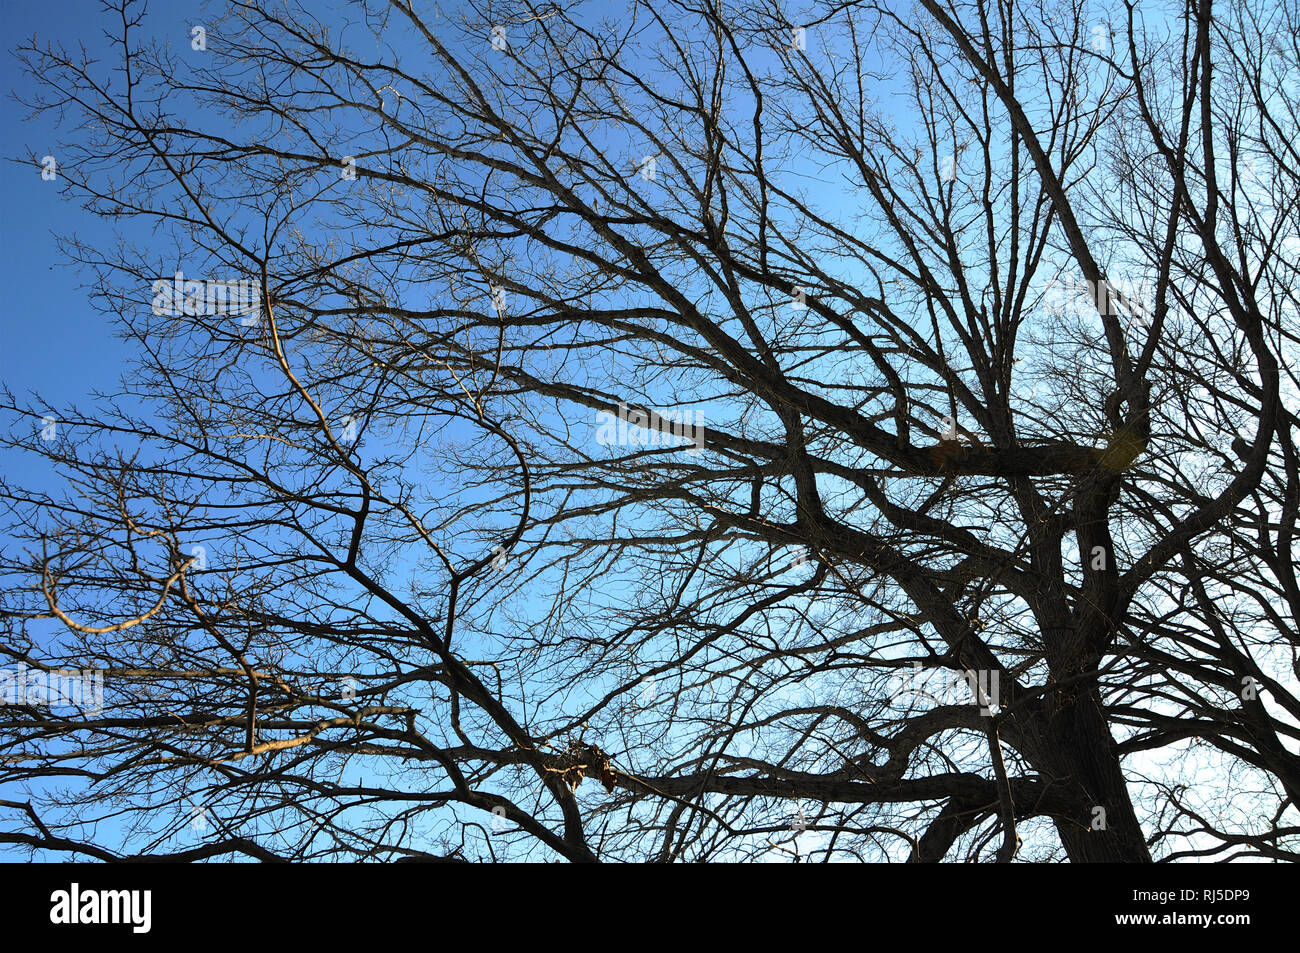 A tangle of branches from winter trees hibernating in winter set against the sky. Stock Photo